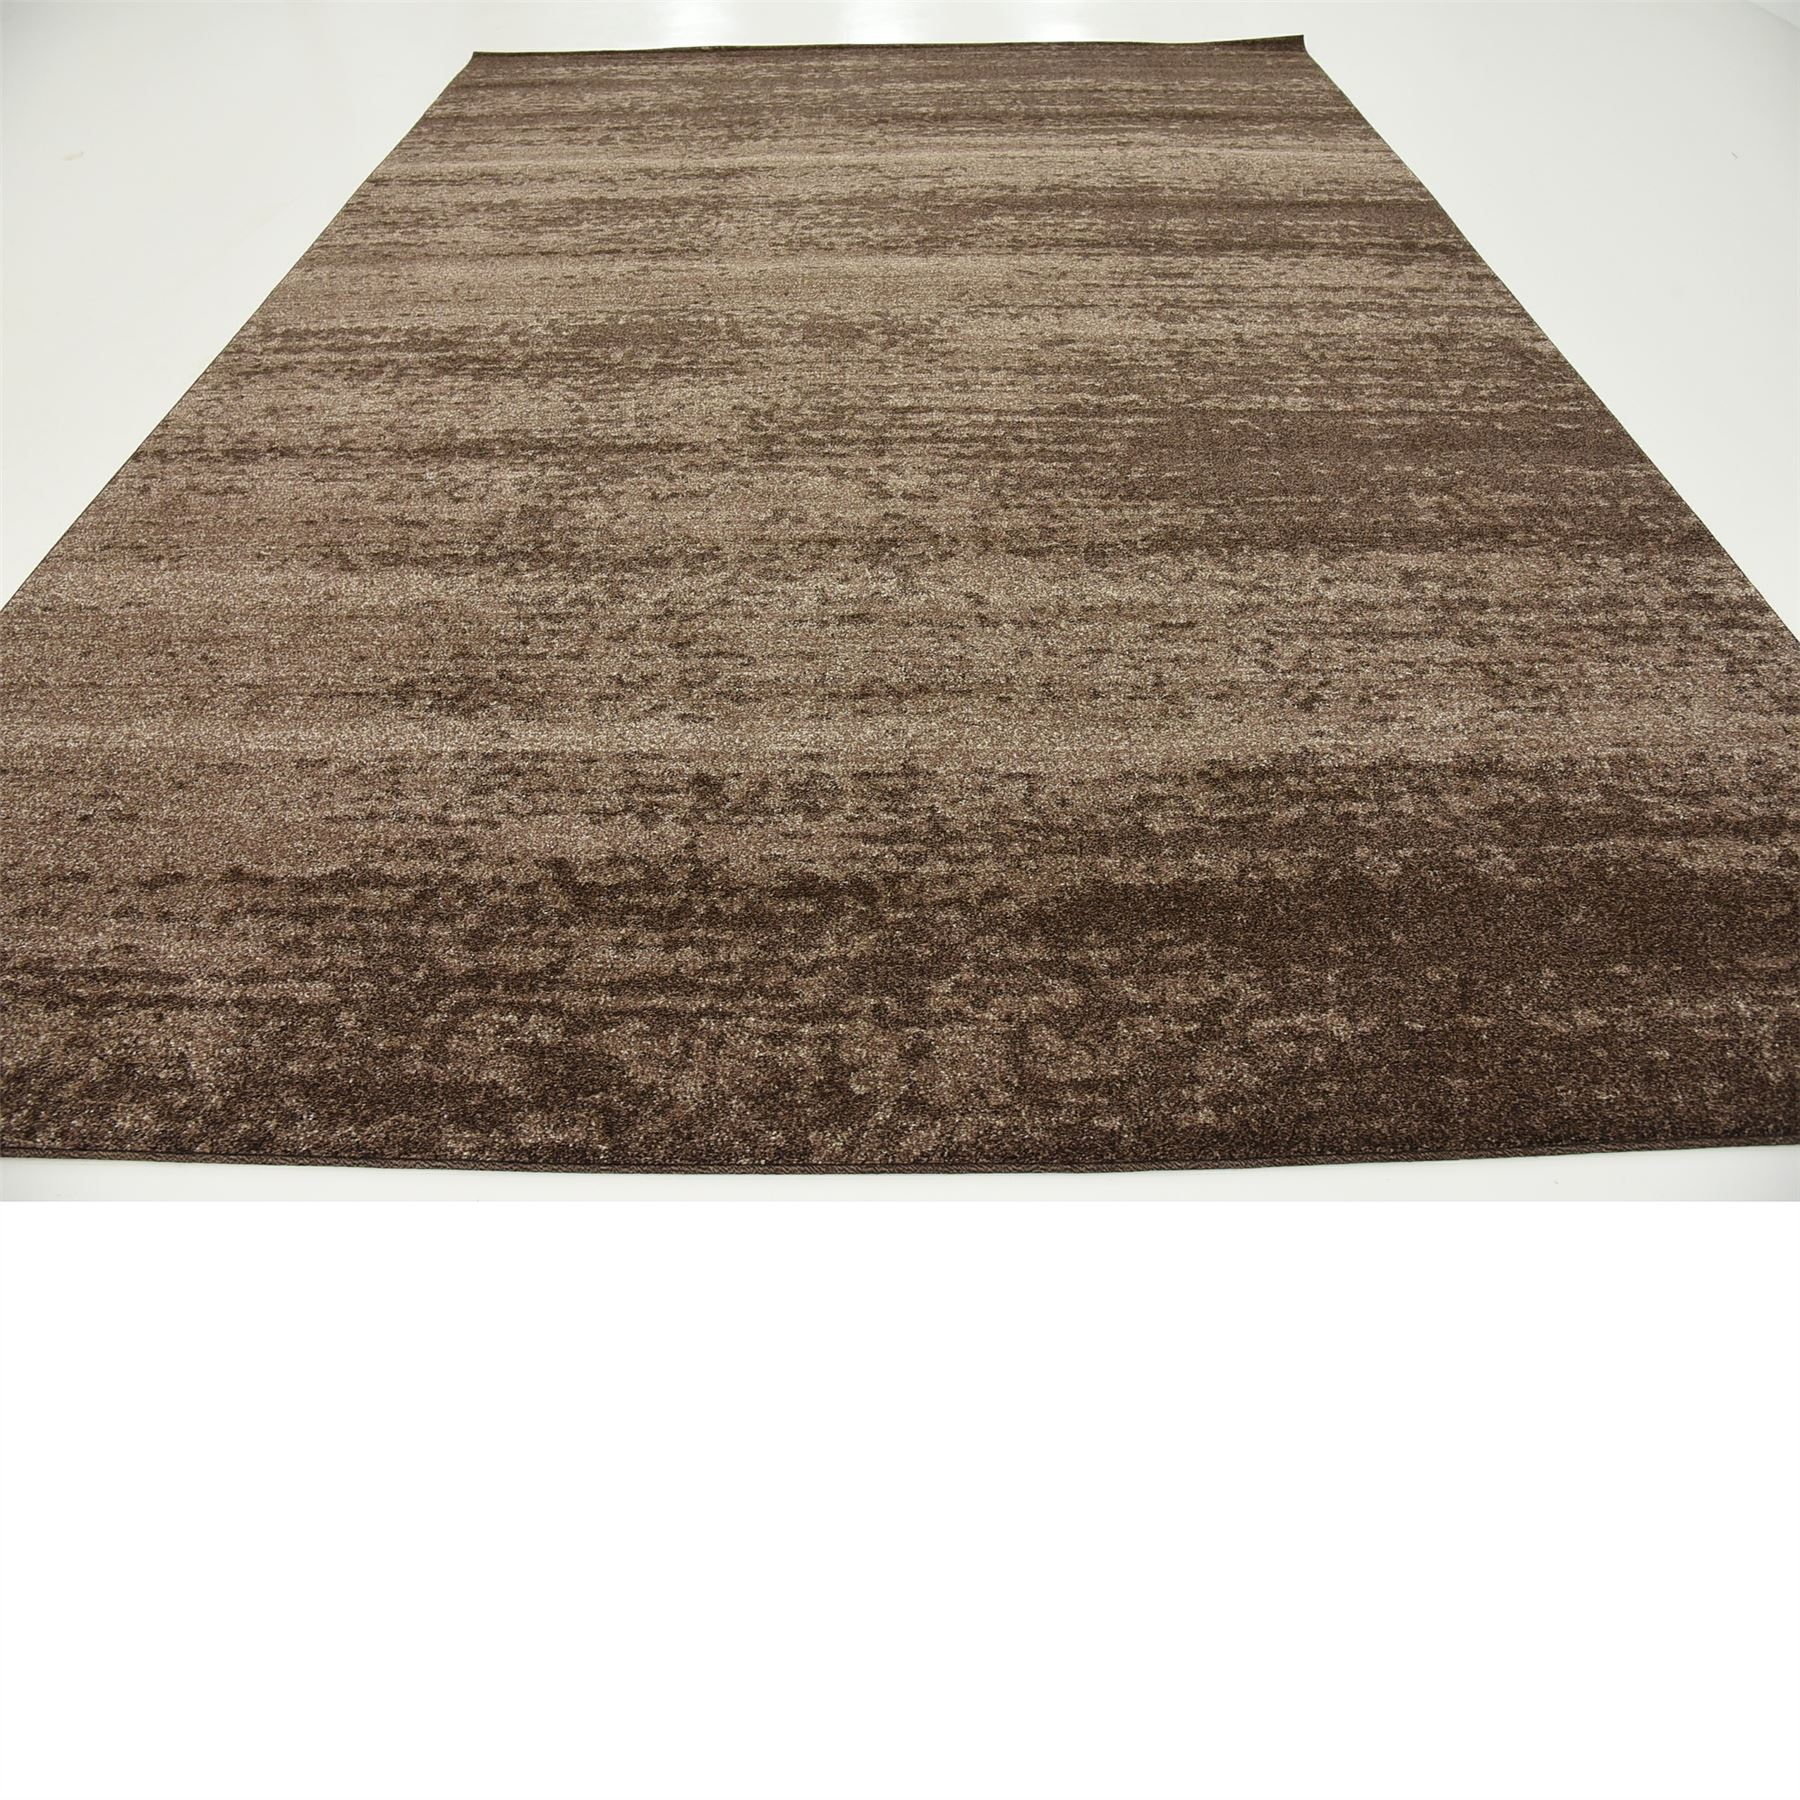 Modern plain rugs soft thin pile area carpet brown 9 39 x 12 for Soft area rugs